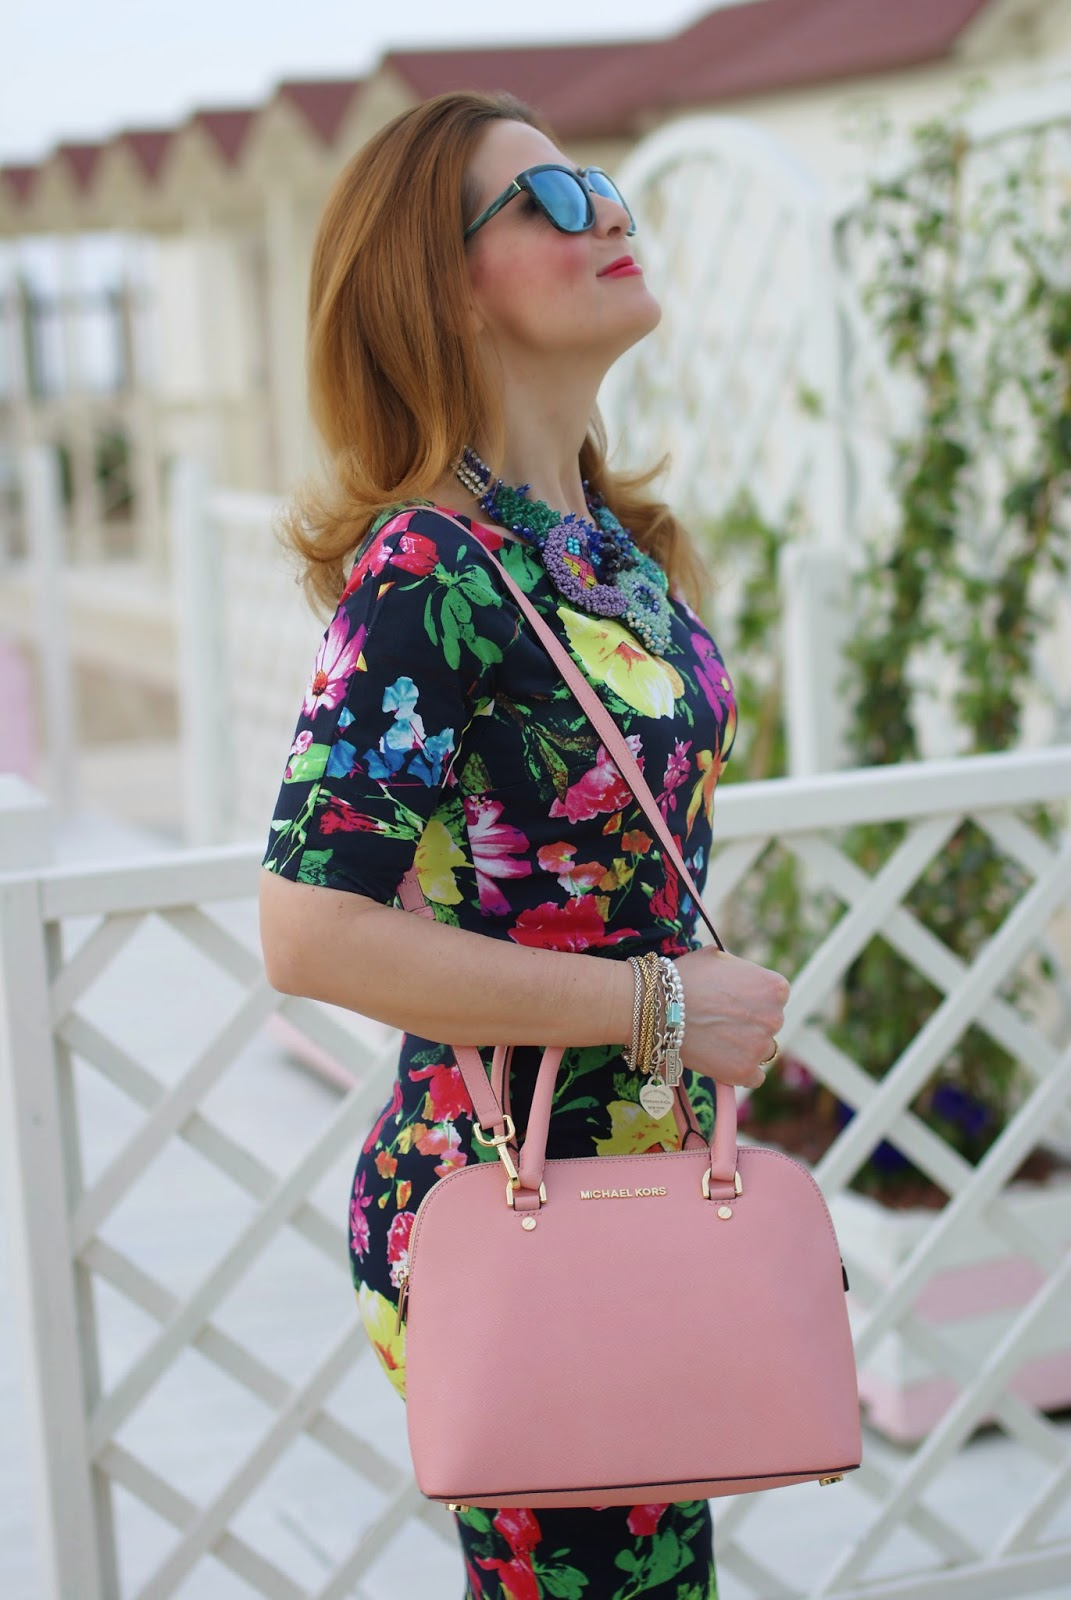 Ax Paris floral midi dress, pink crossbody bag, Michael Kors Cindy pink bag, HypeGlass sunglasses on Fashion and Cookies fashion blog, fashion blogger style